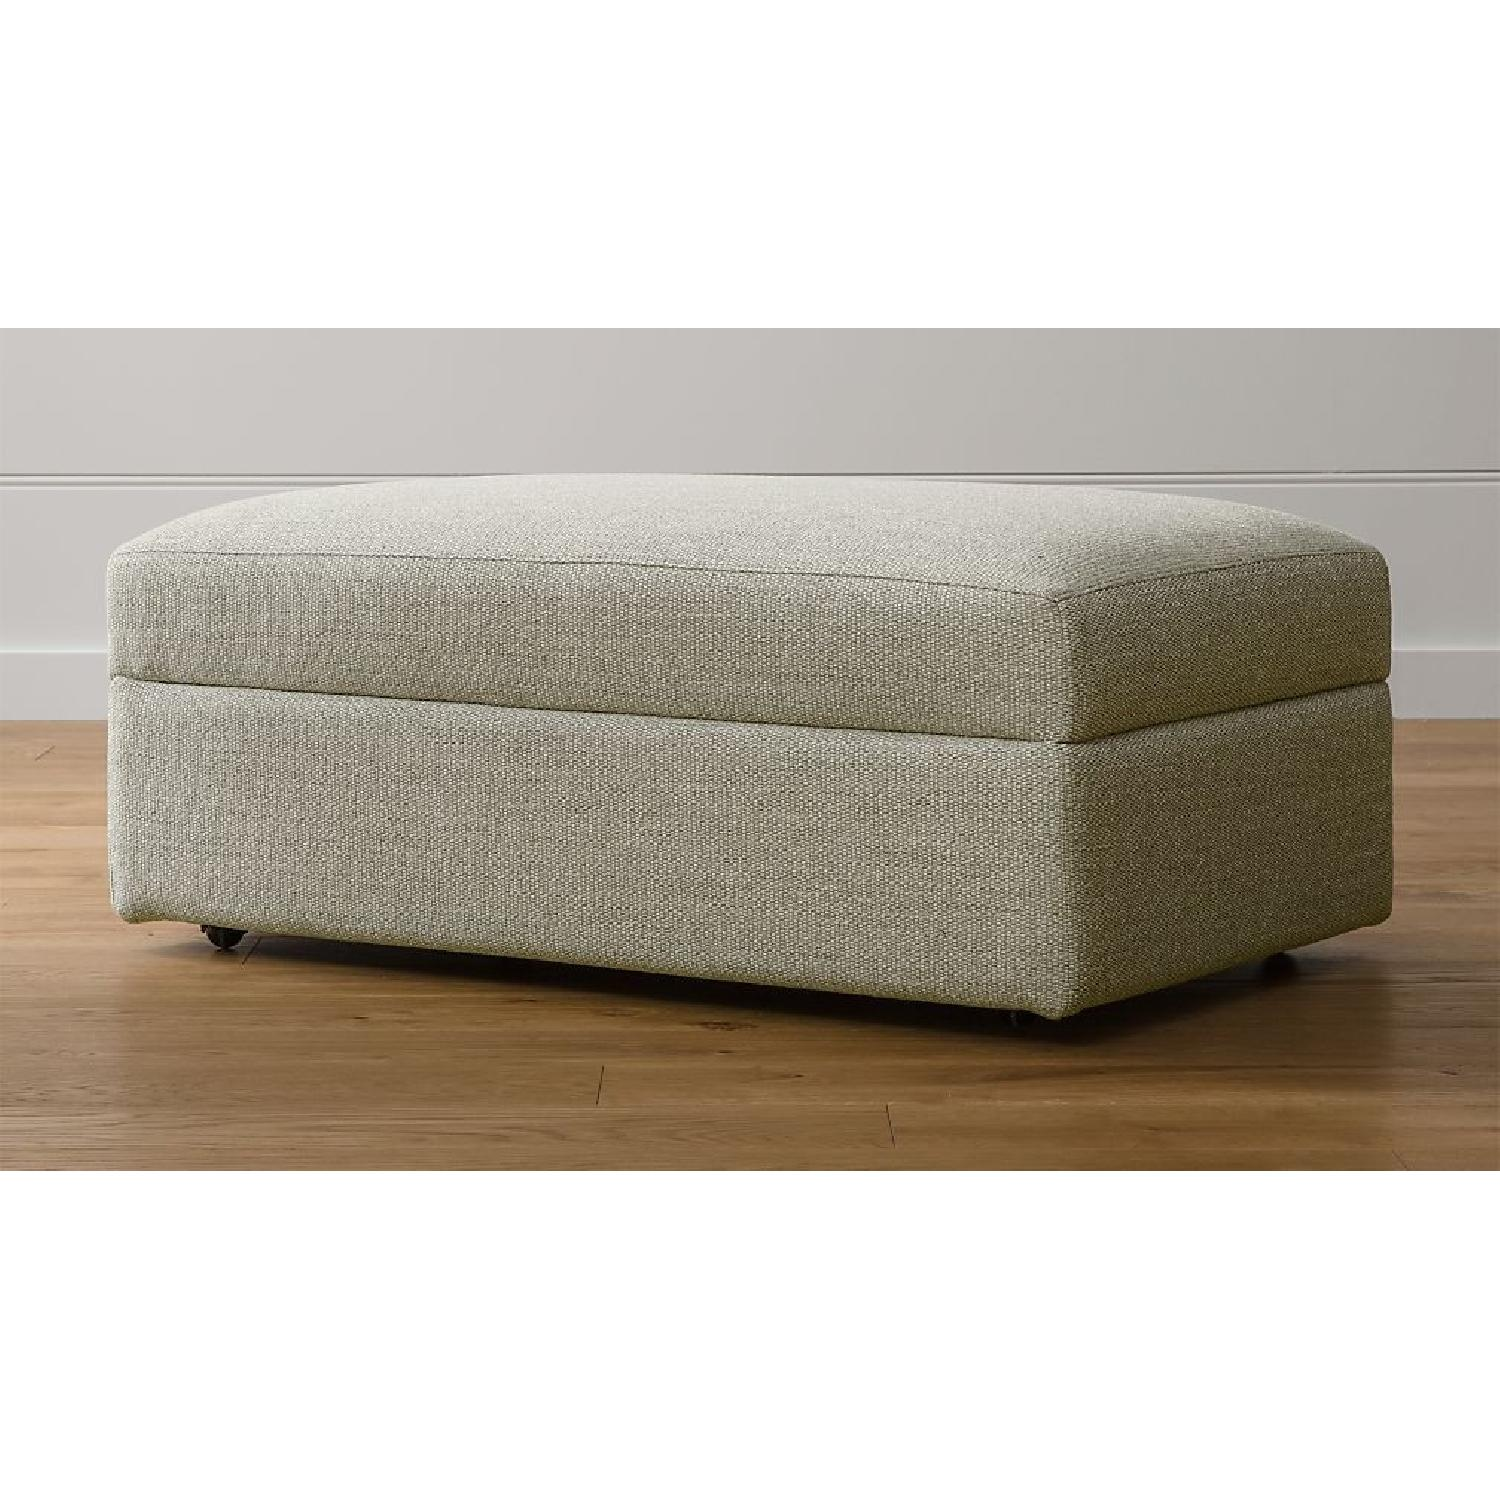 Crate & Barrel Lounge II Ottoman and a Half w/ Casters - image-1